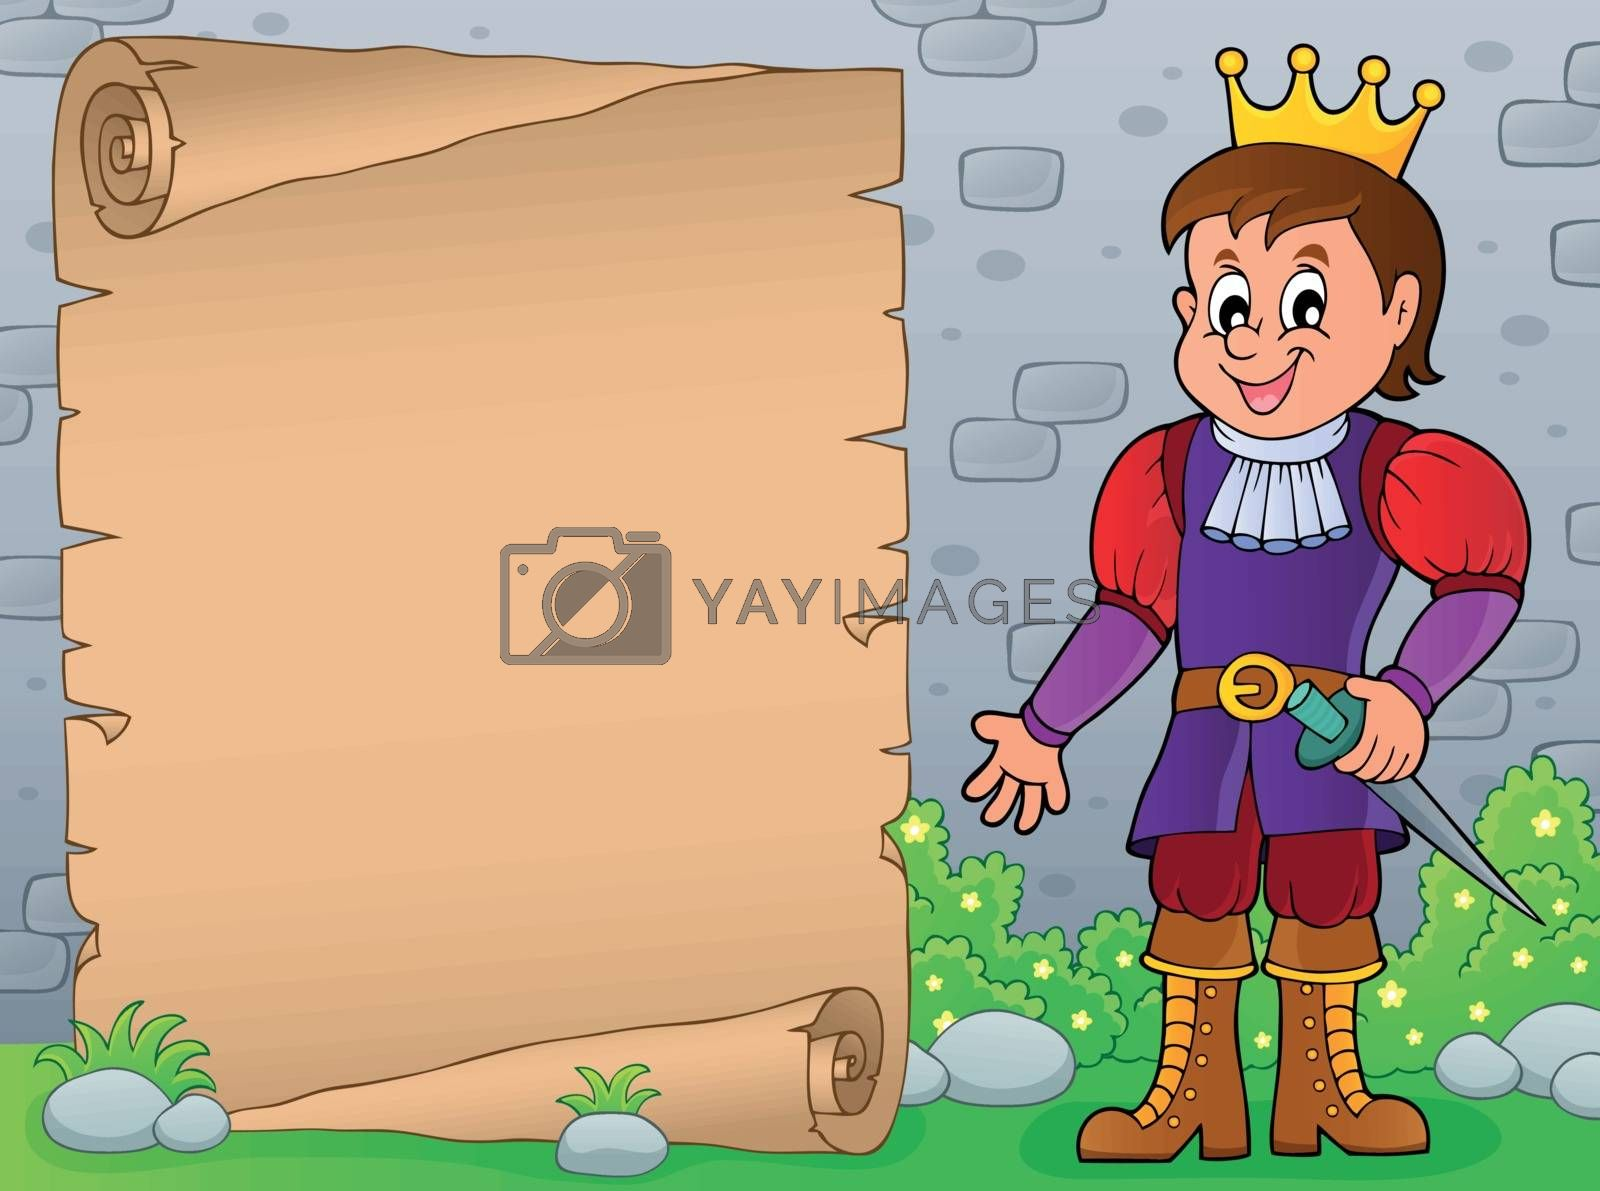 Parchment with prince theme 7 - eps10 vector illustration.